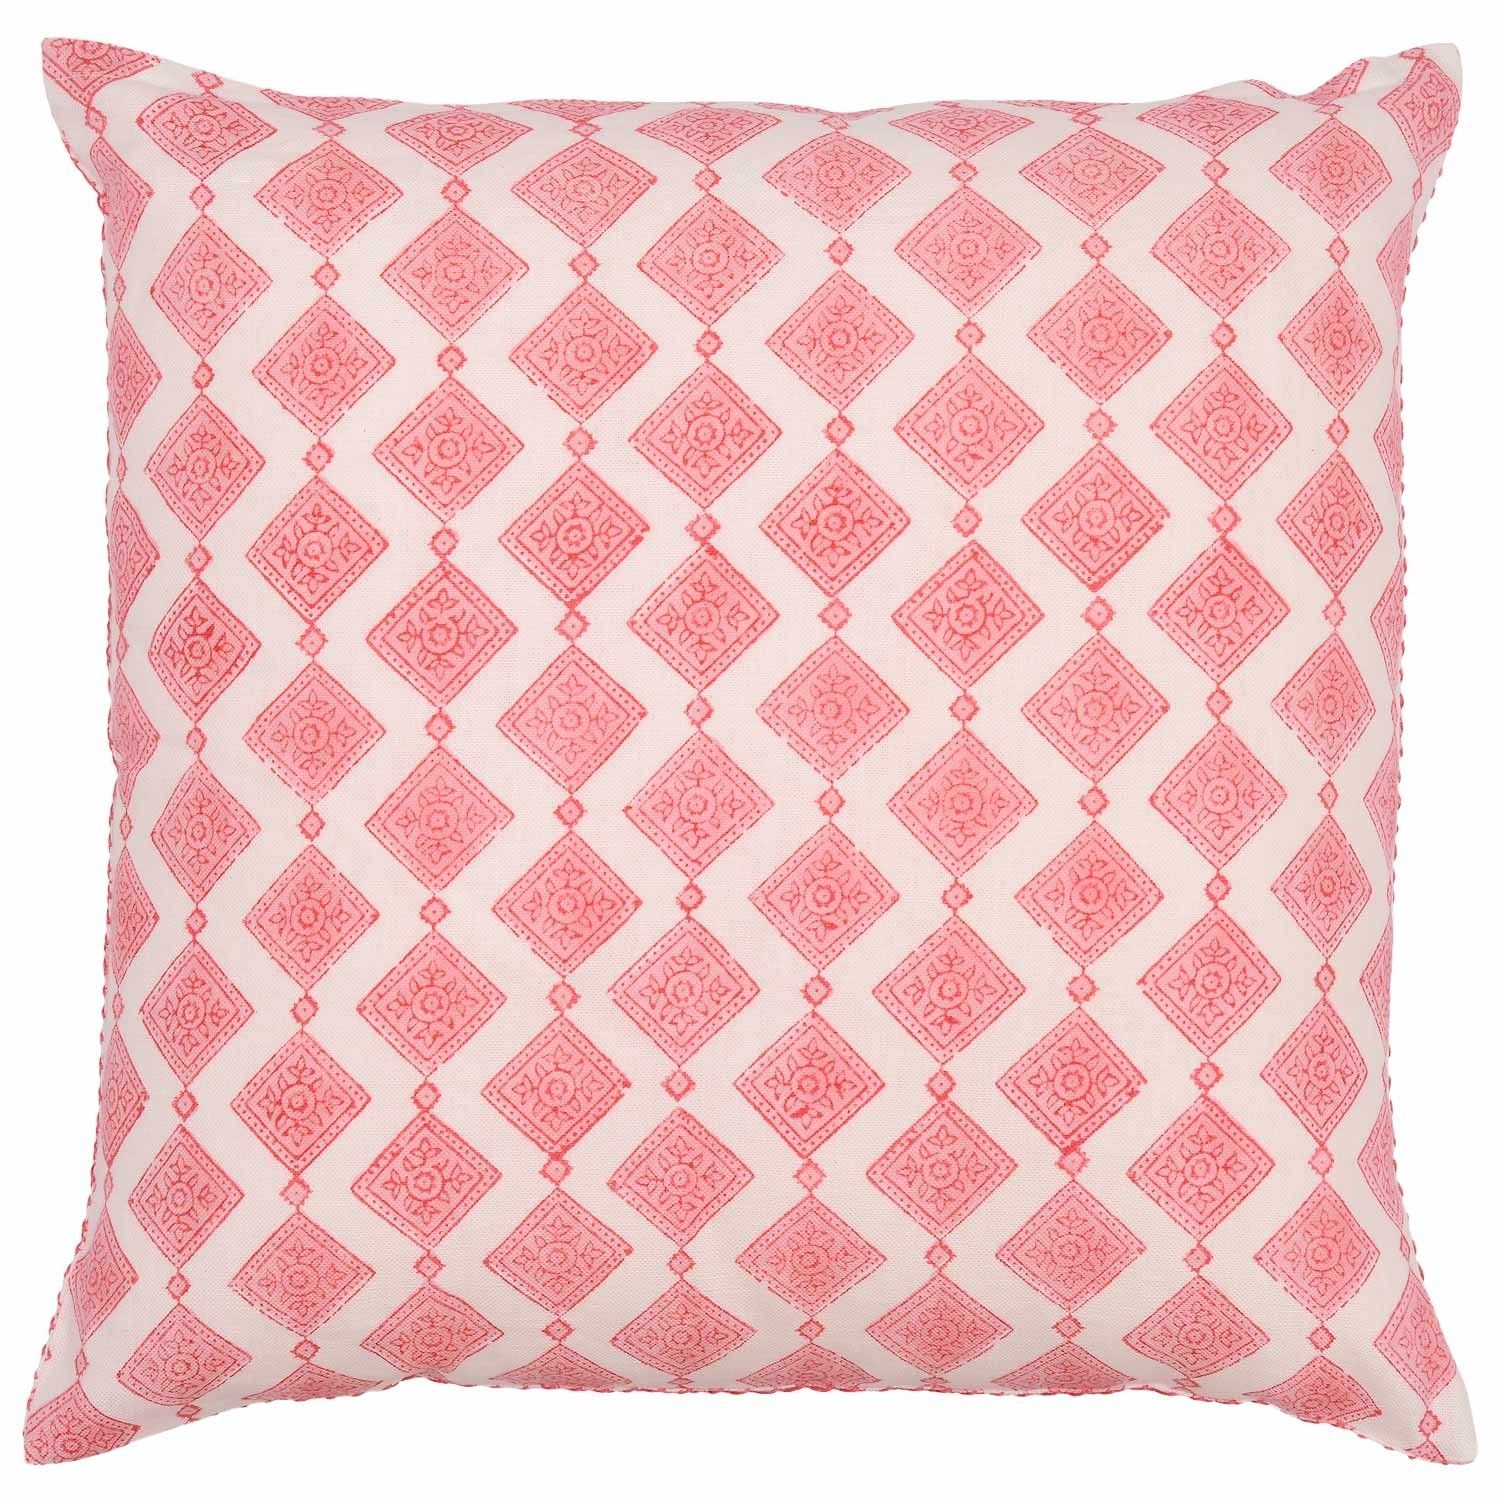 decor damask stunning and jacquard for single with lee large silk peach elegant pure pillow throw gold decorative interiors jofa velvet kravet inch accents home pillows